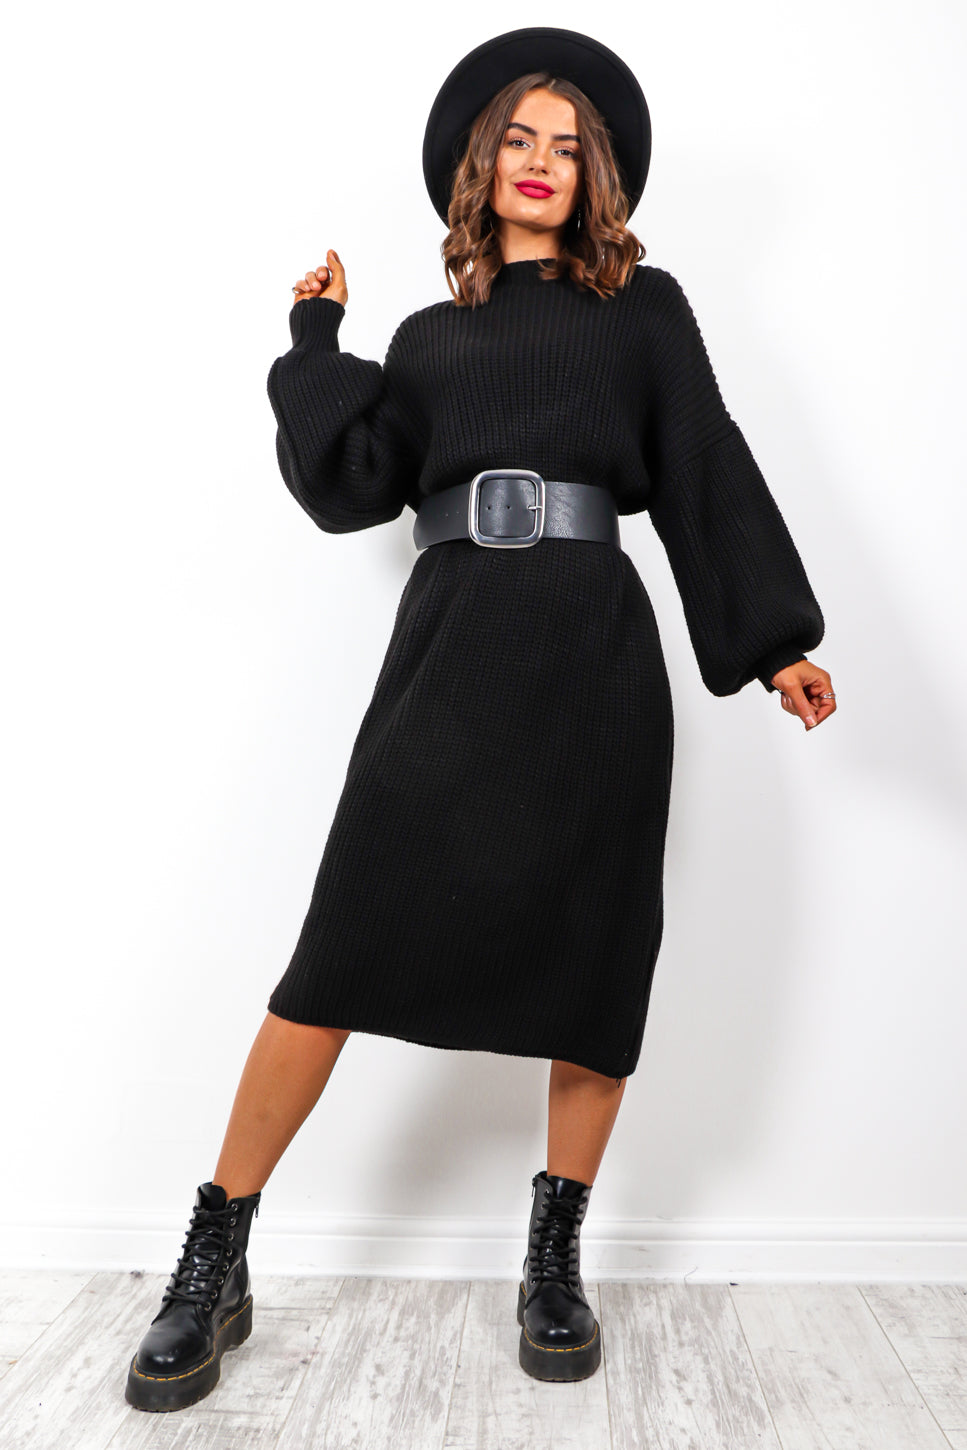 Be Home For Winter - Black Knitted Dress